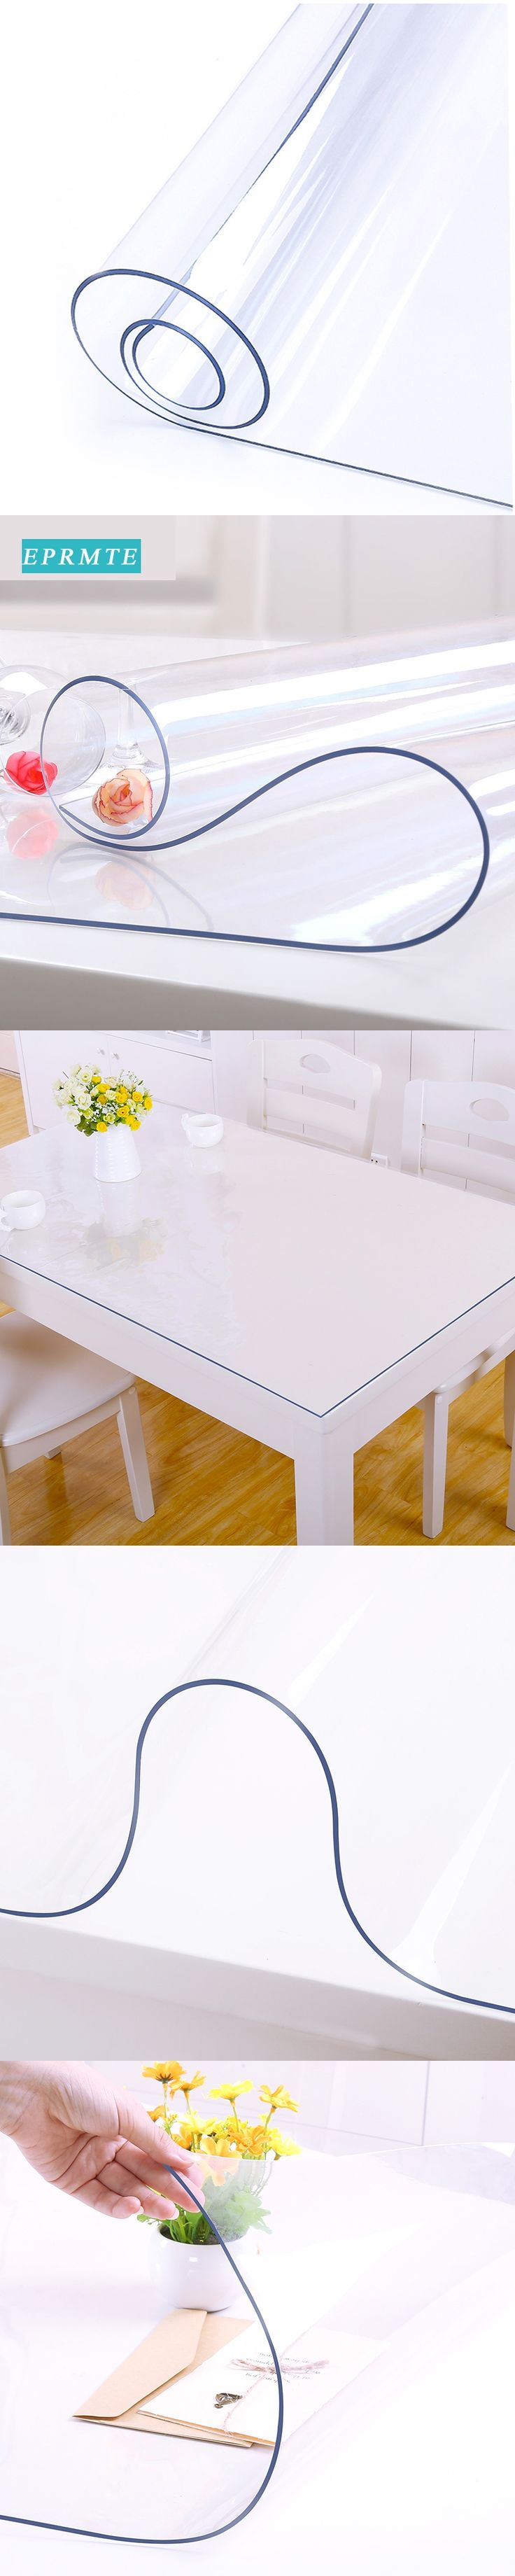 solid waterproof pvc table cloths transparent soft glass table covers for home oilproof rectangle modern decoration table mats